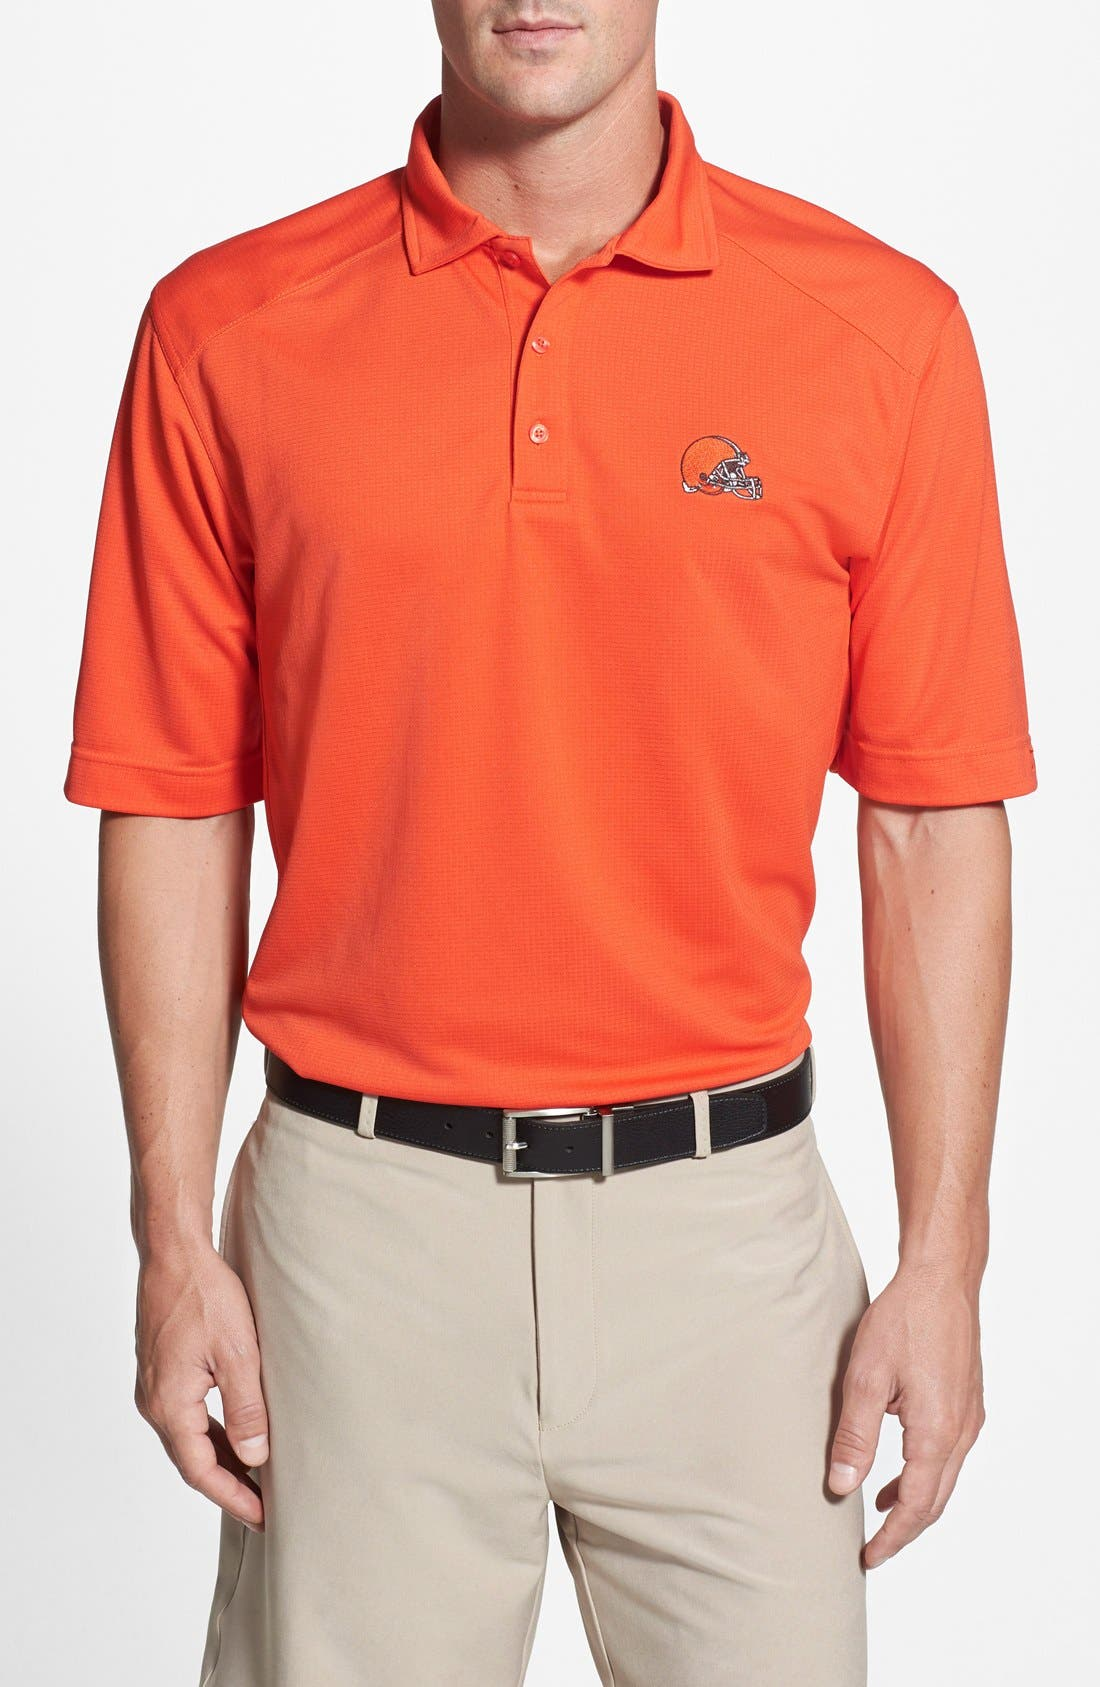 Cleveland Browns - Genre DryTec Moisture Wicking Polo,                             Main thumbnail 1, color,                             820